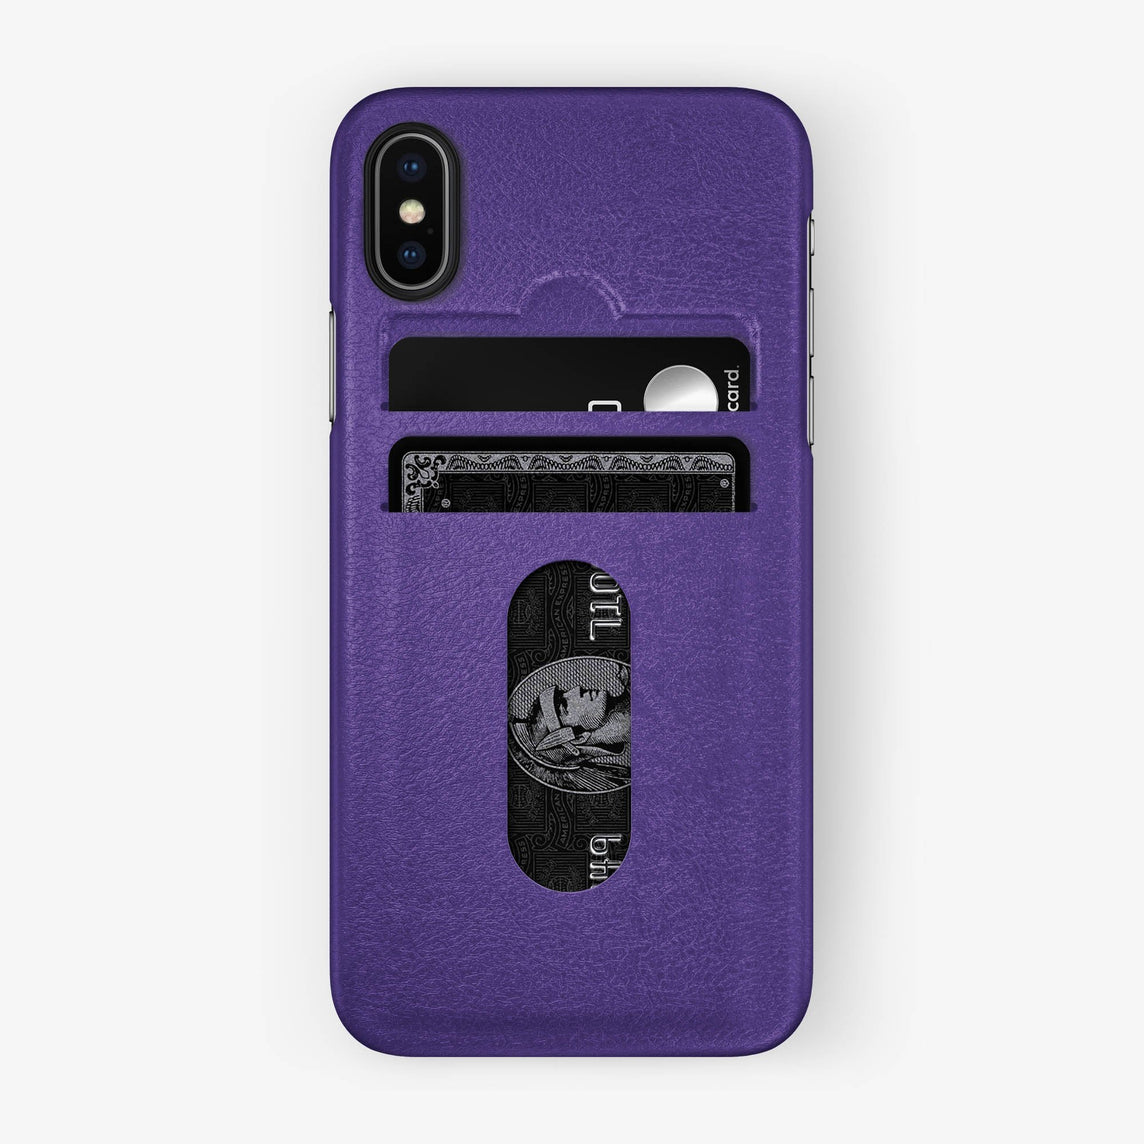 Purple Calfskin iPhone Card Holder Case for iPhone X finishing black - Hadoro Luxury Cases